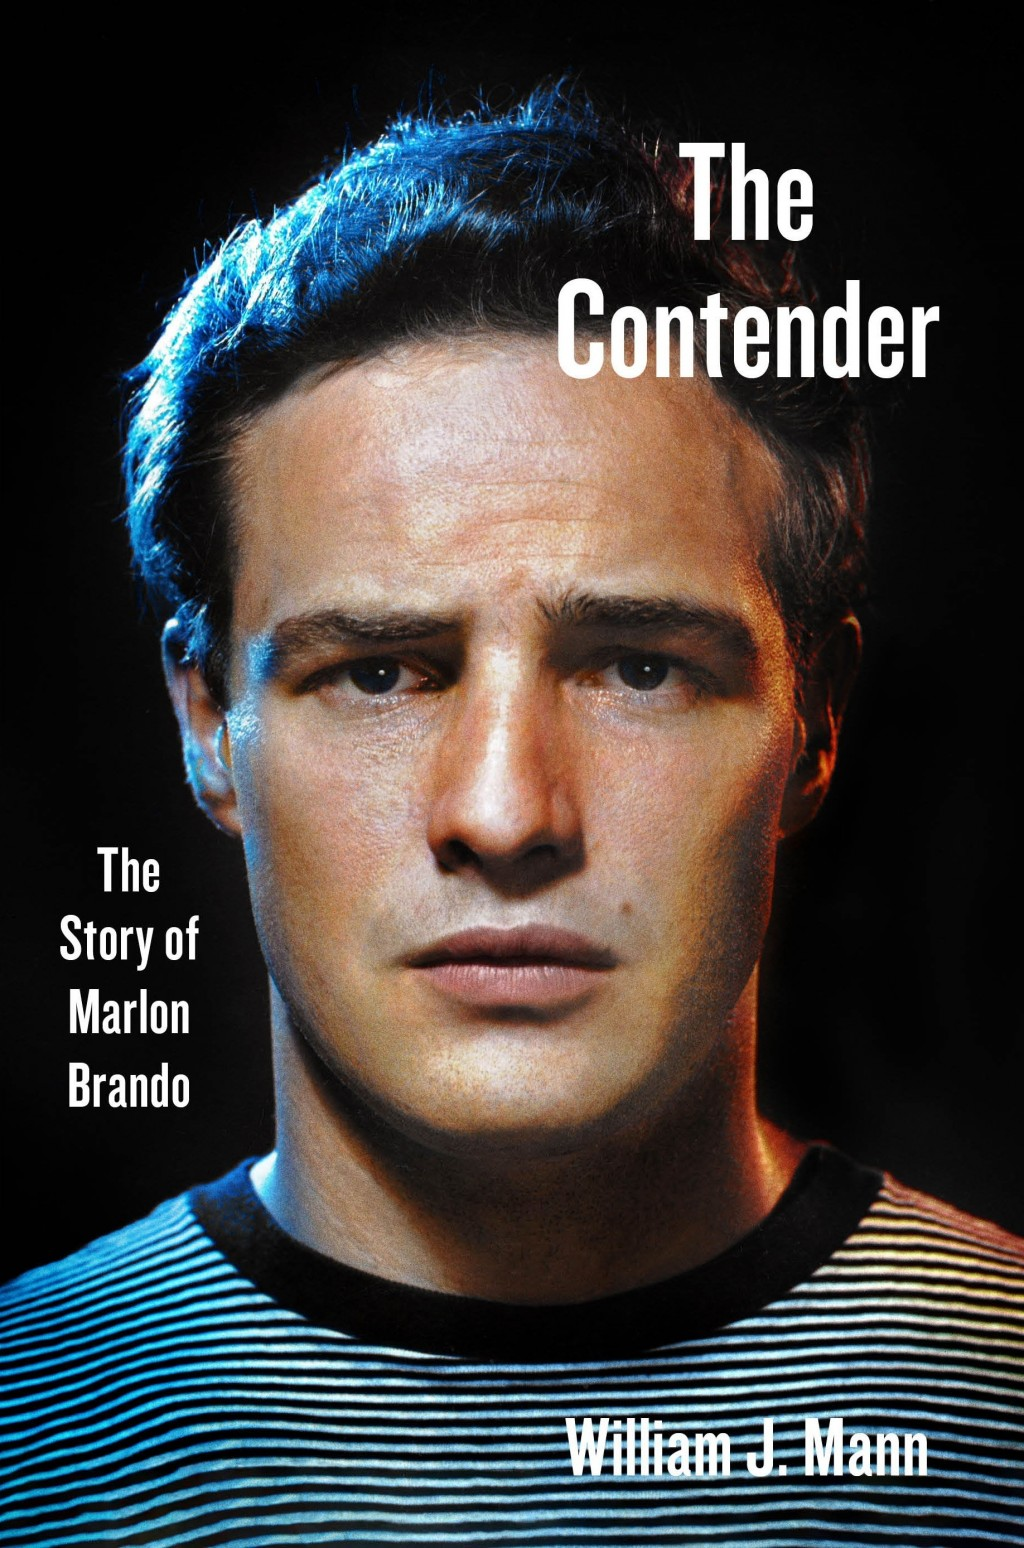 """This cover image released by Harper shows """"The Contender: The Story of Marlon Brando,"""" by William J. Mann. (Harper via AP)"""